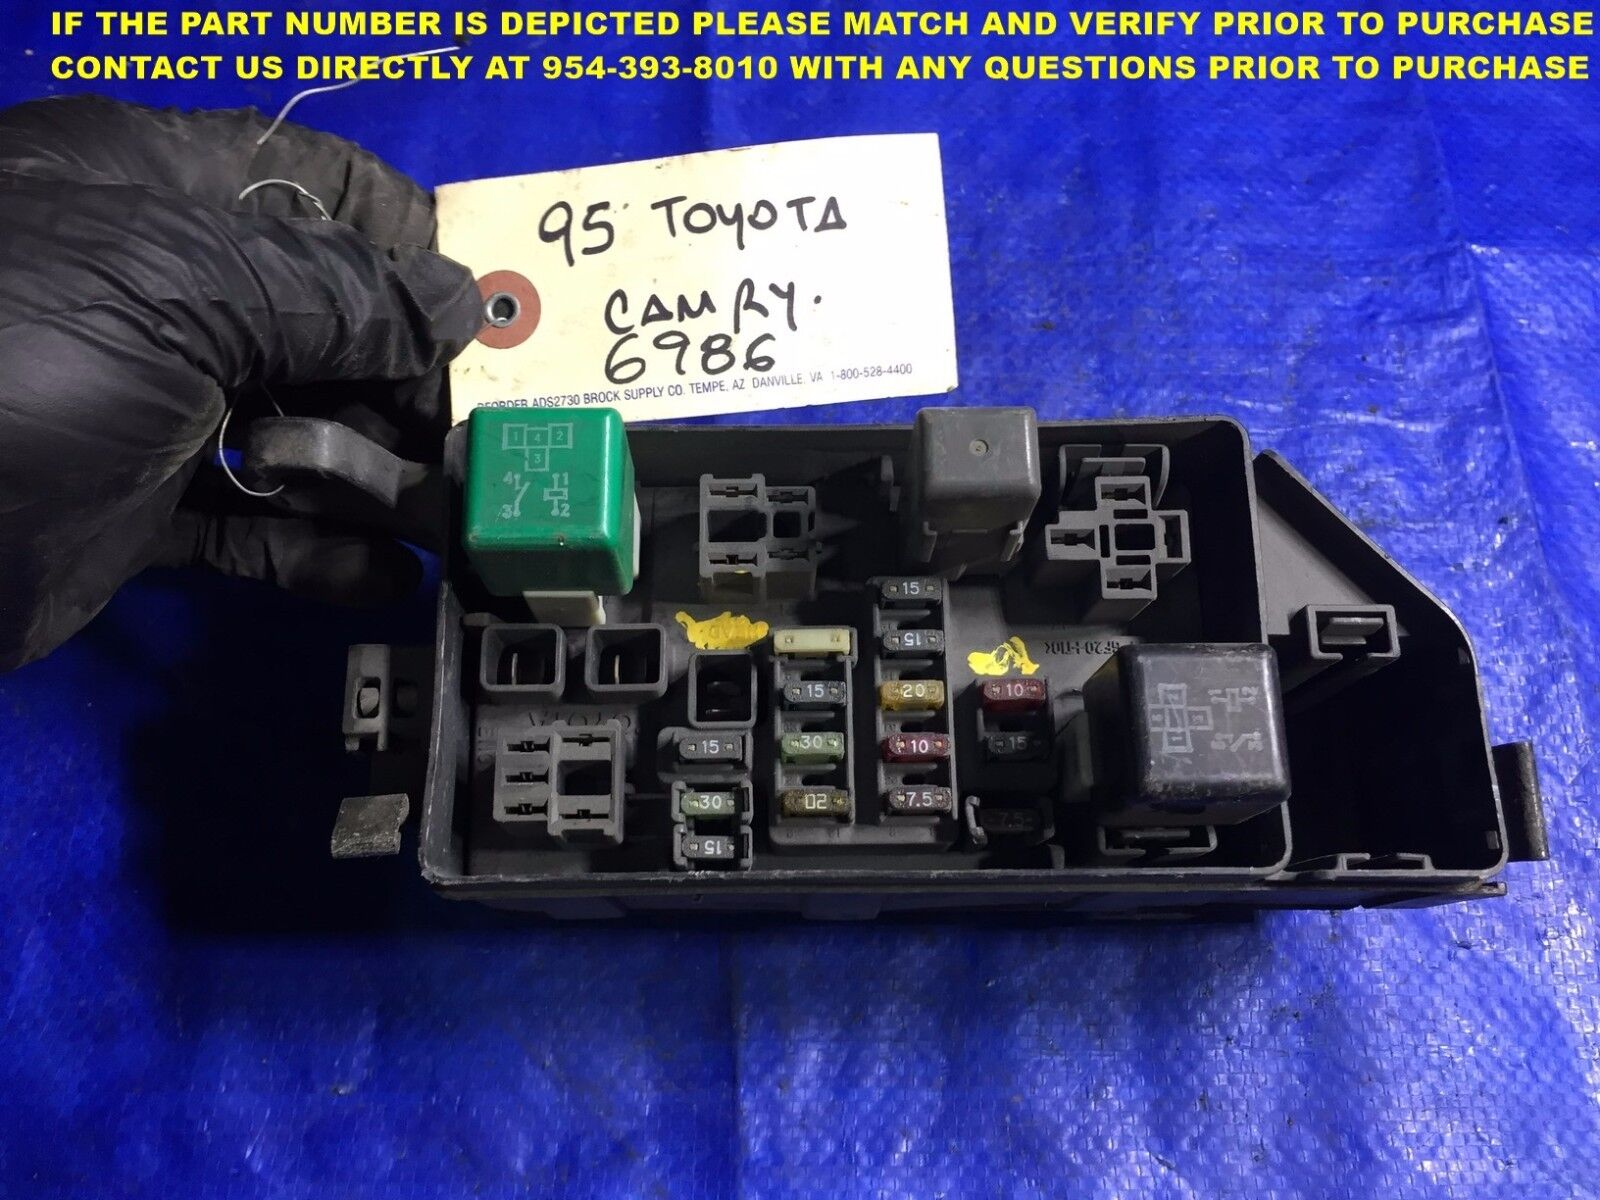 Used 1995 Toyota Camry Dash Parts For Sale Fuse Box Cover